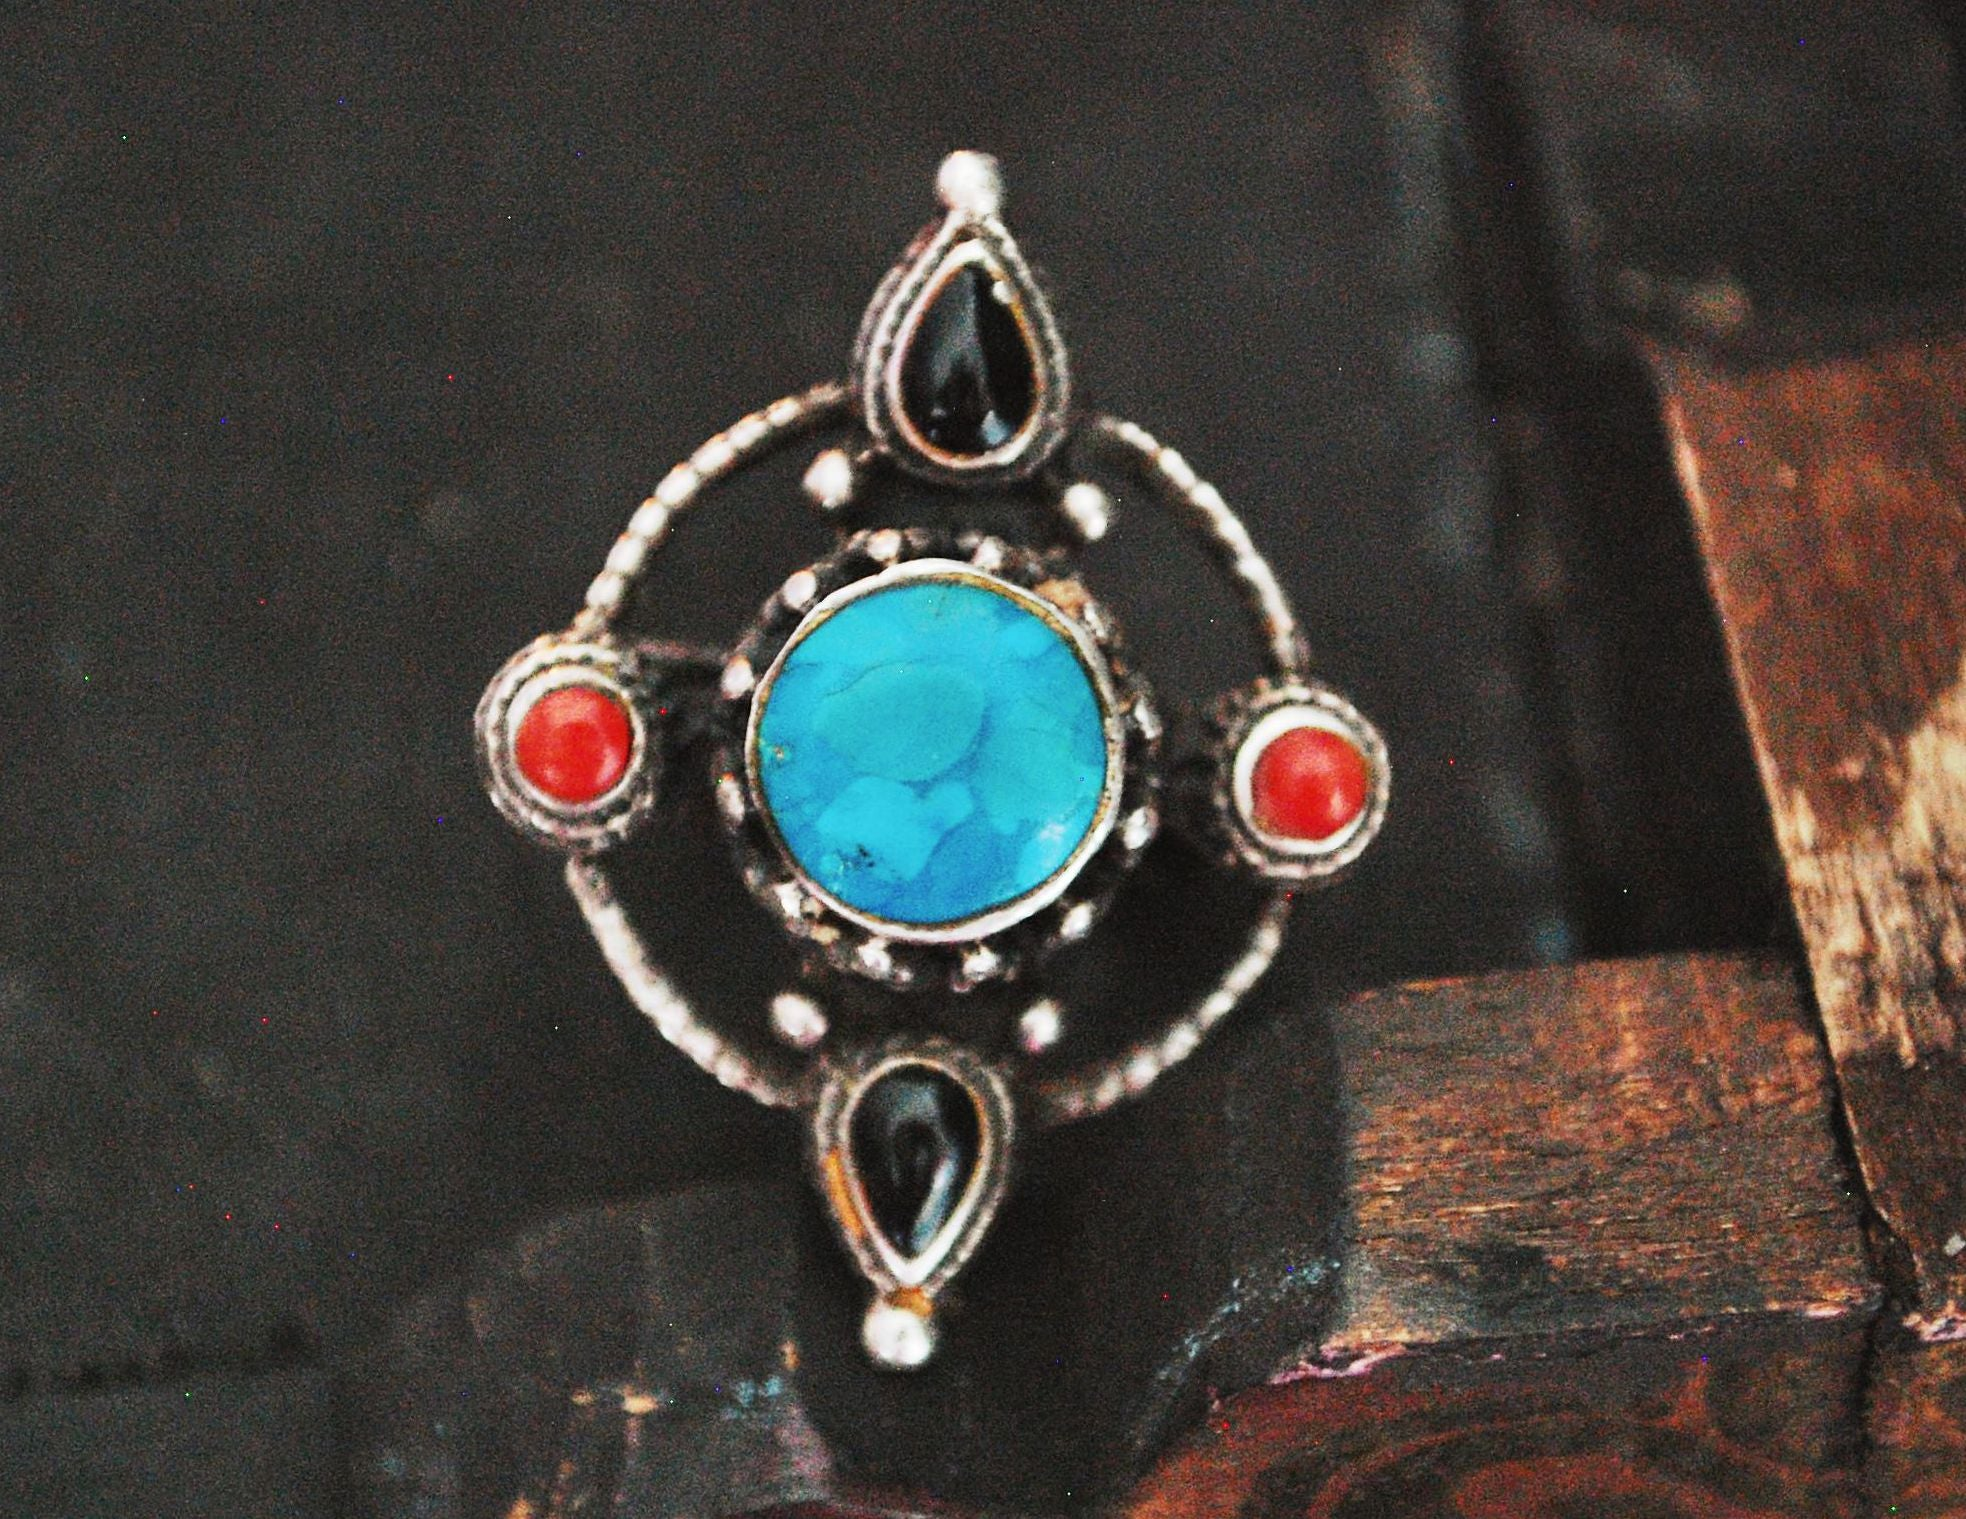 Vintage Nepali Turquoise, Coral and Onyx Ring